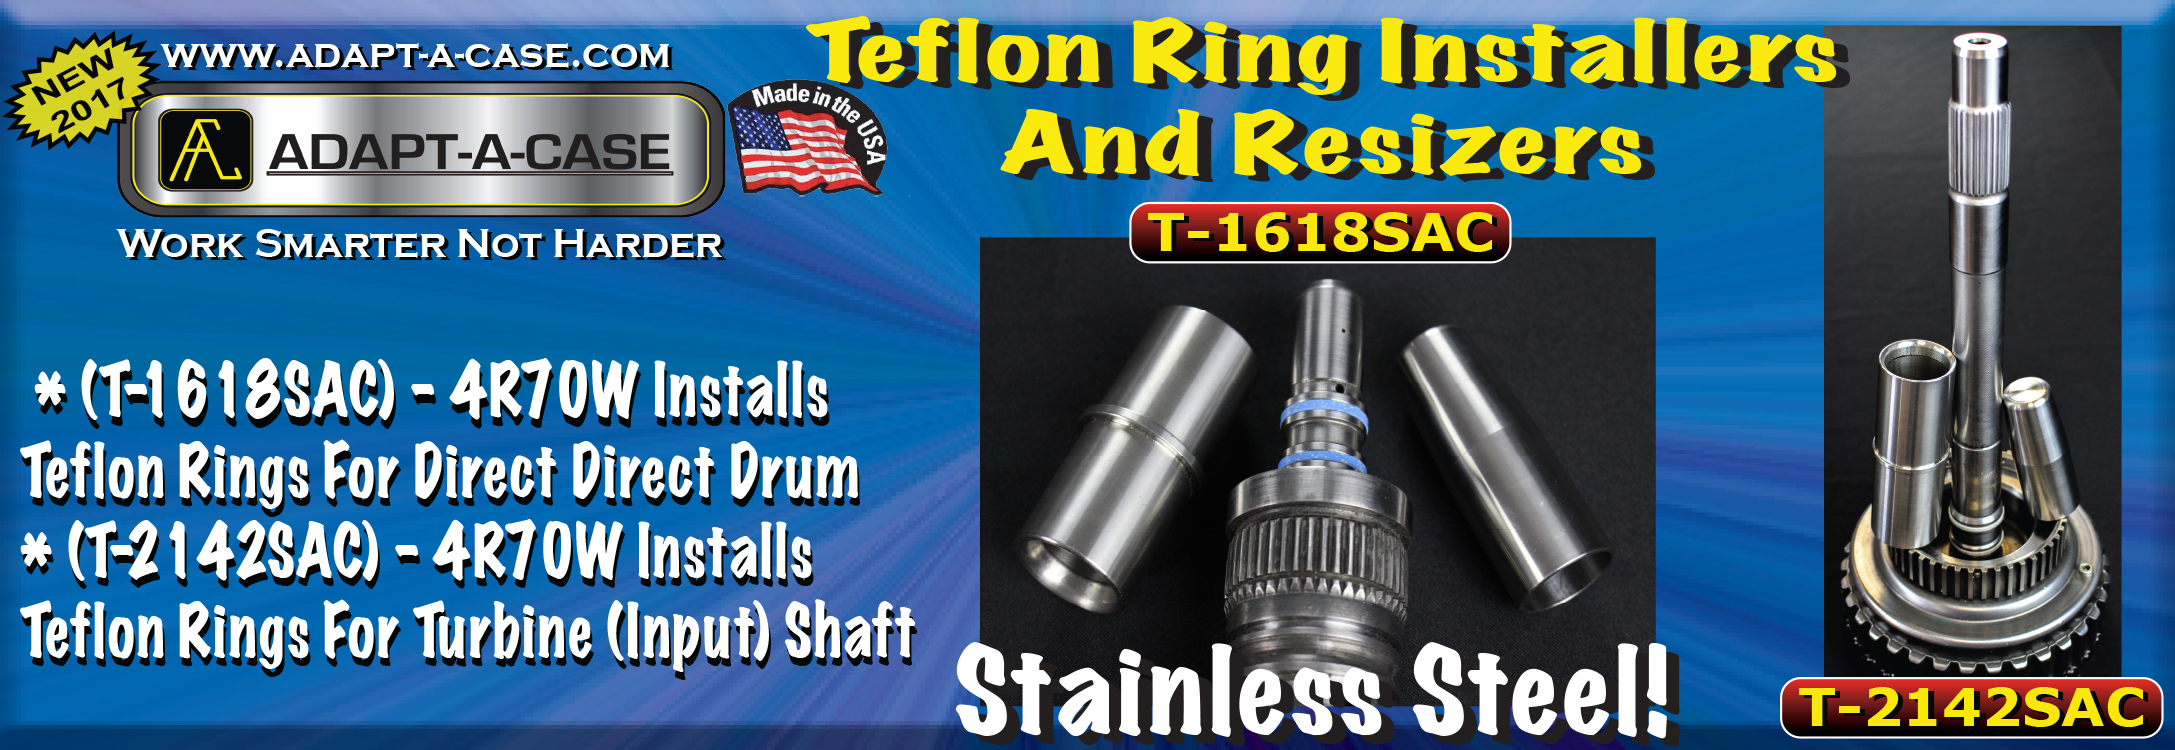 Stainless Steel Teflon Rin Installers for 4R70W